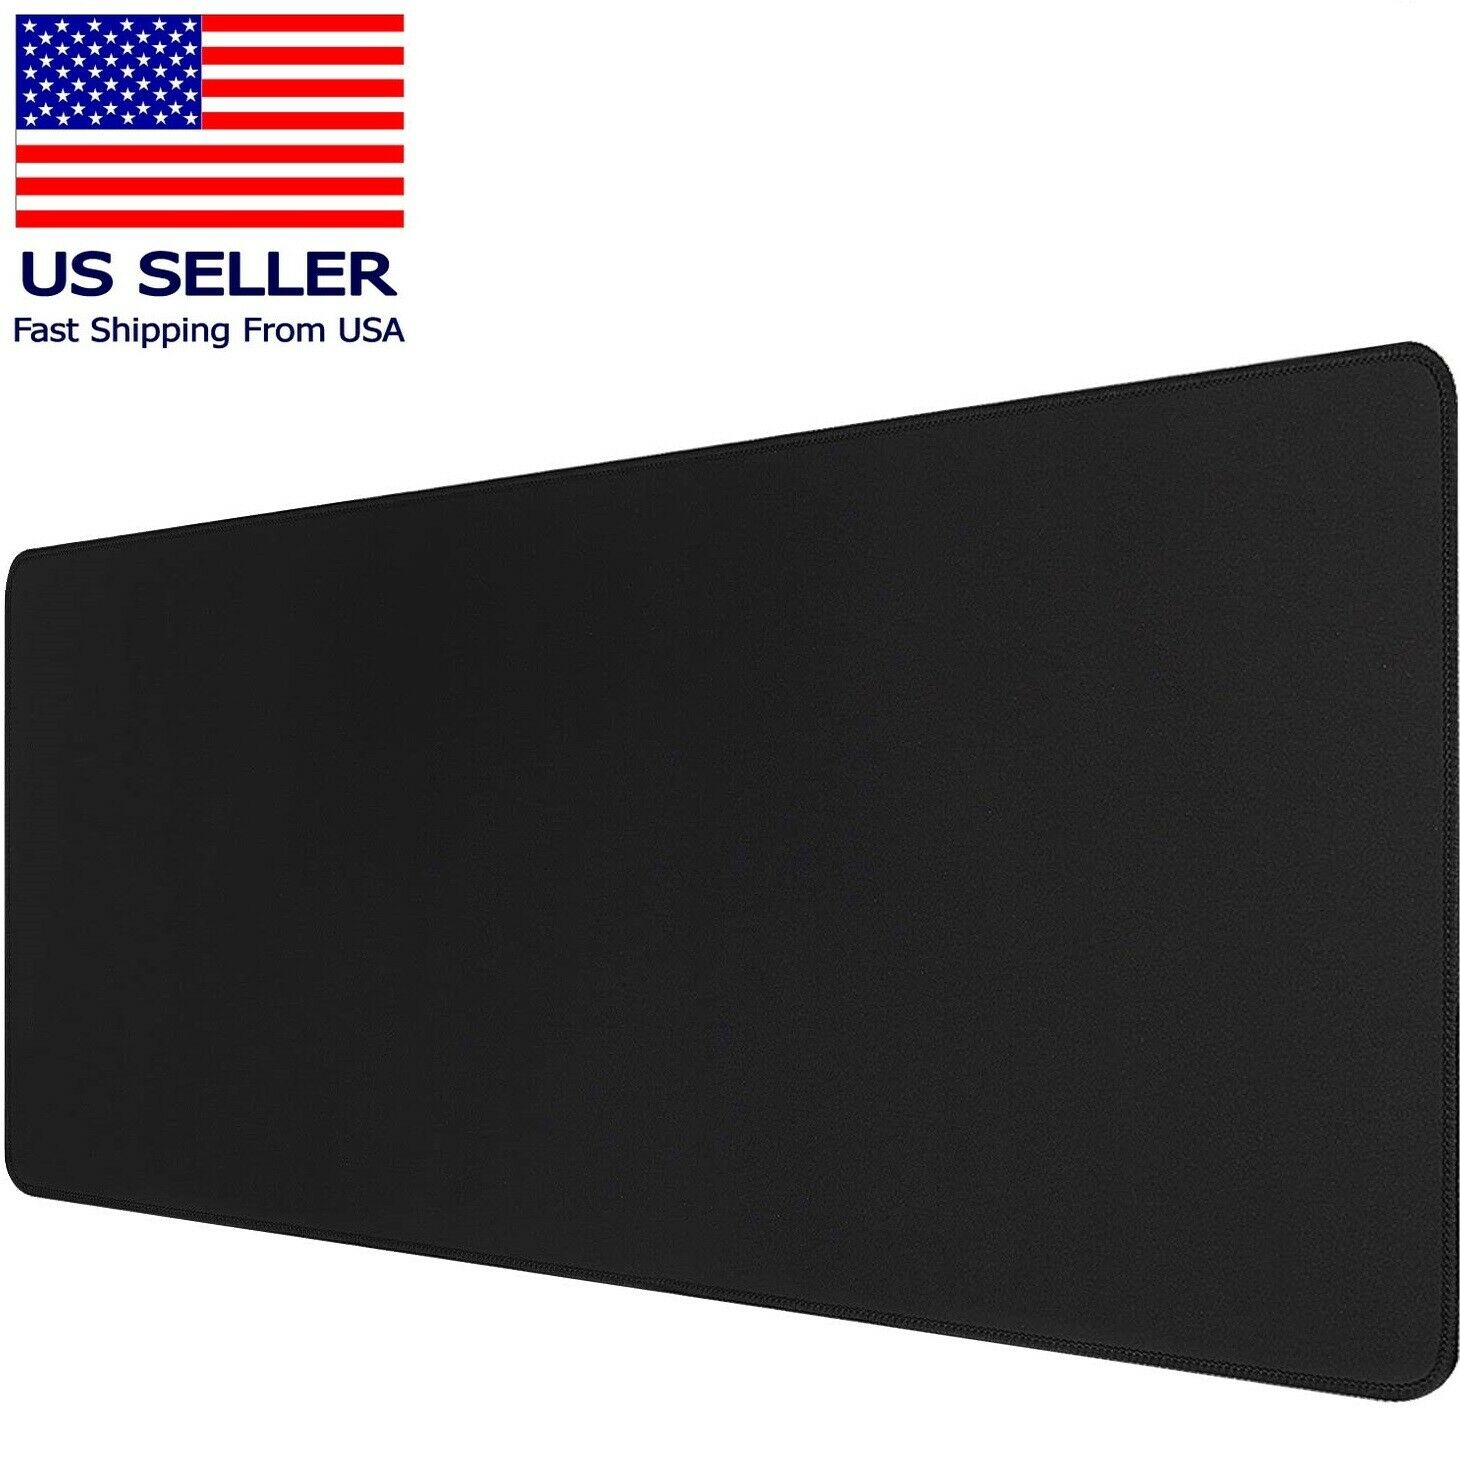 Large Extended Gaming Mouse Pad Mat, Stitched Edges Non-Slip